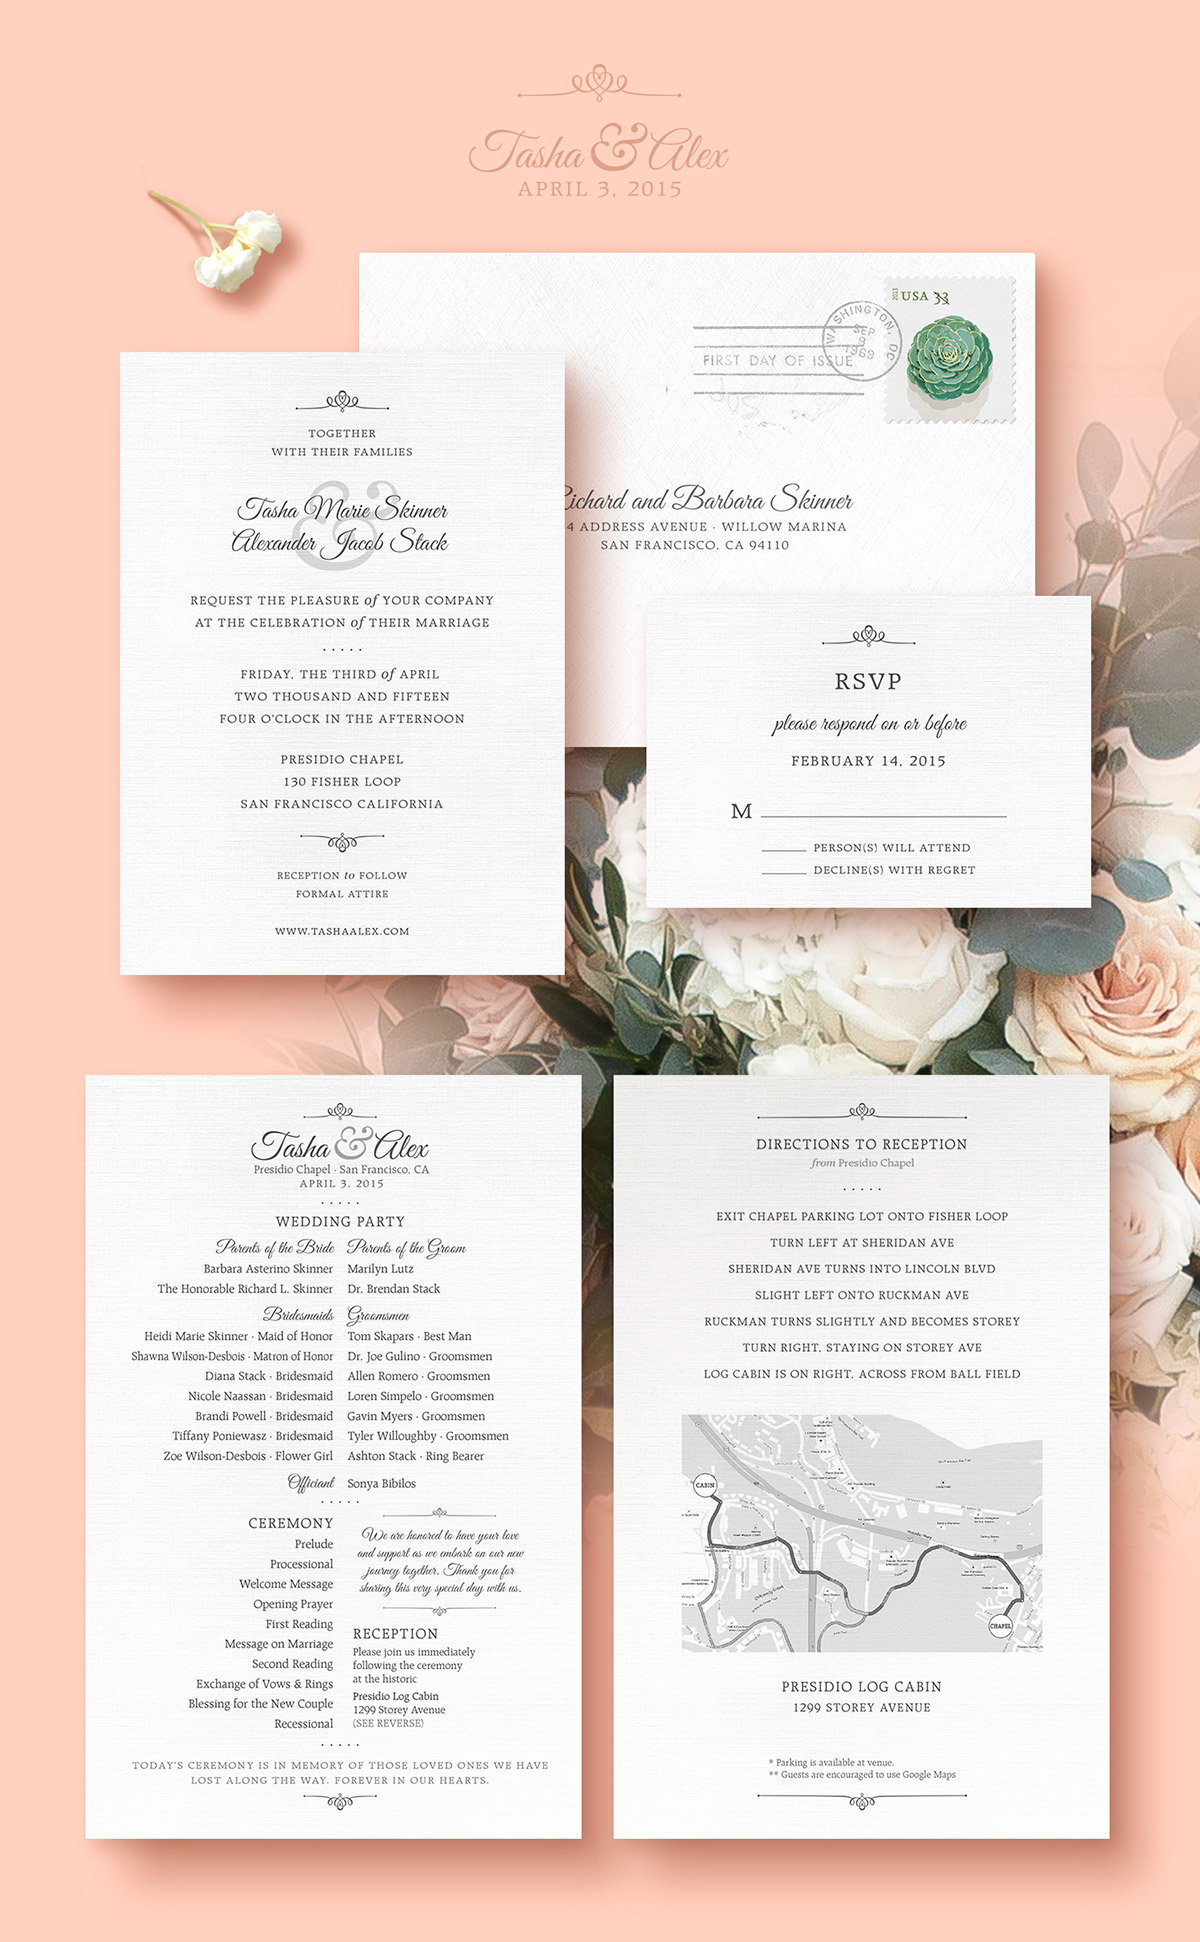 Wedding invitation, RSVP card and wedding program designs